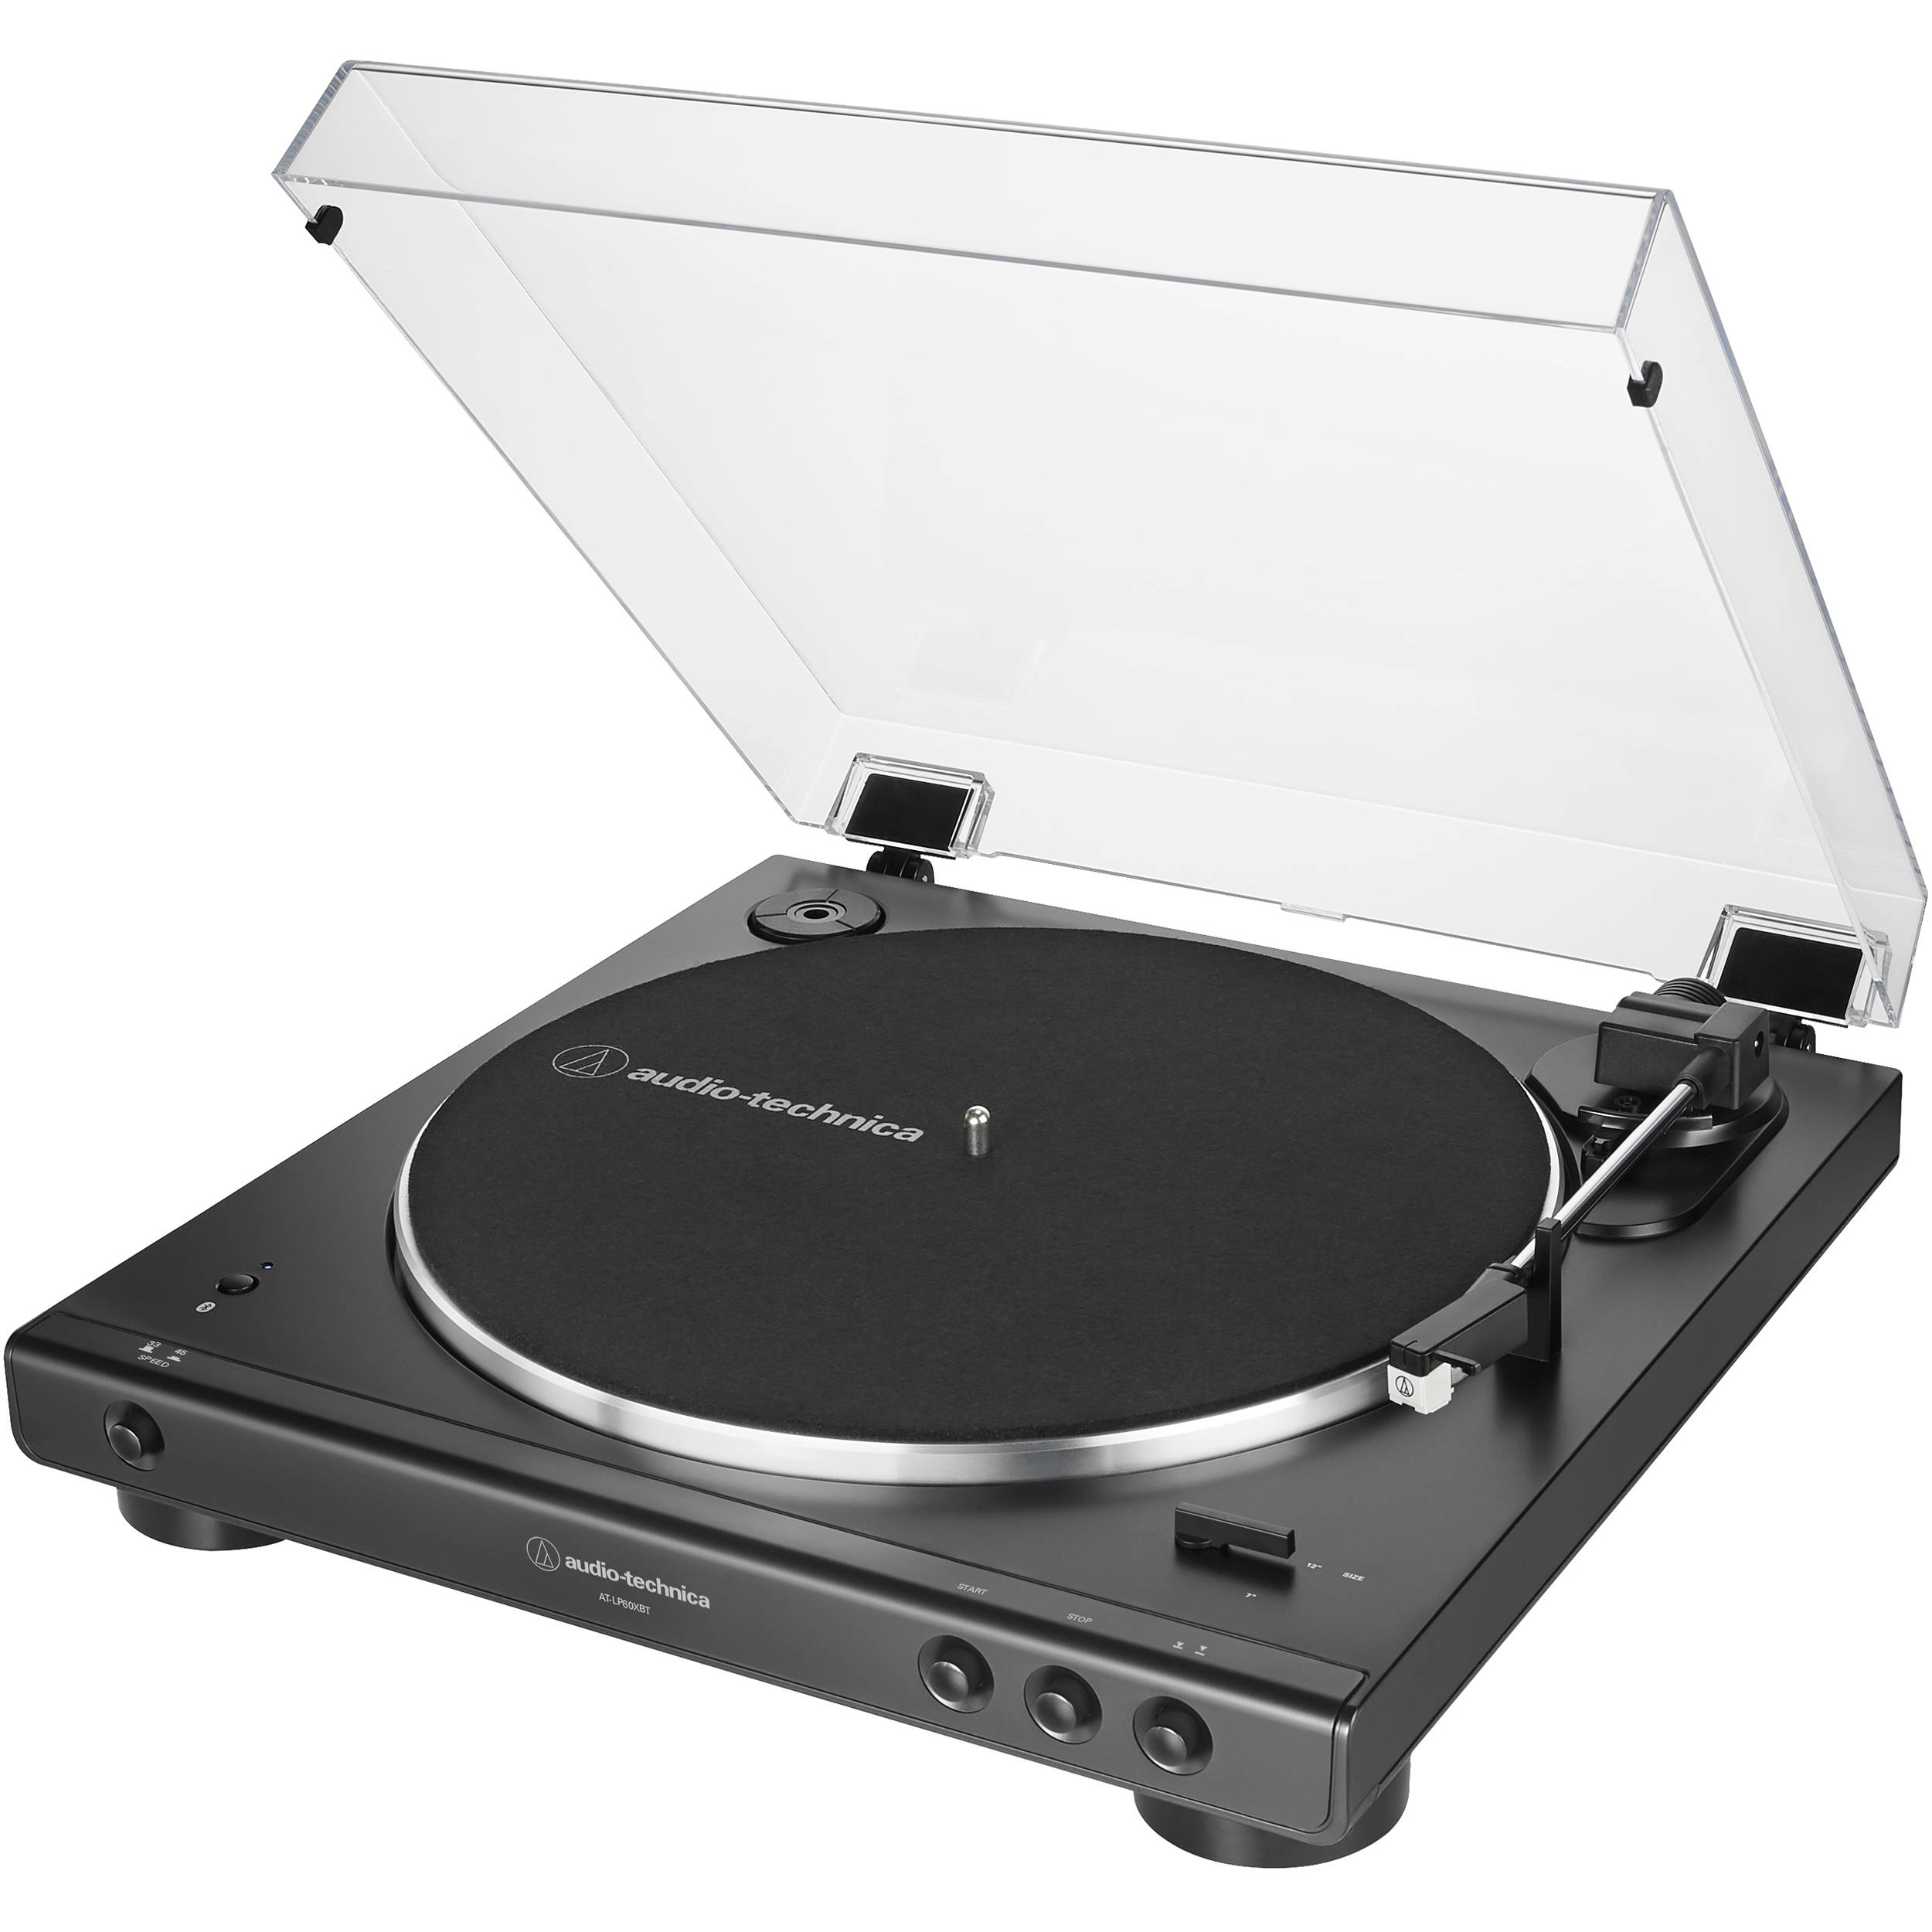 audio_technica_consumer_at_lp60xbt_bk_fully_automatic_belt_drive_stereo_1453366.jpg